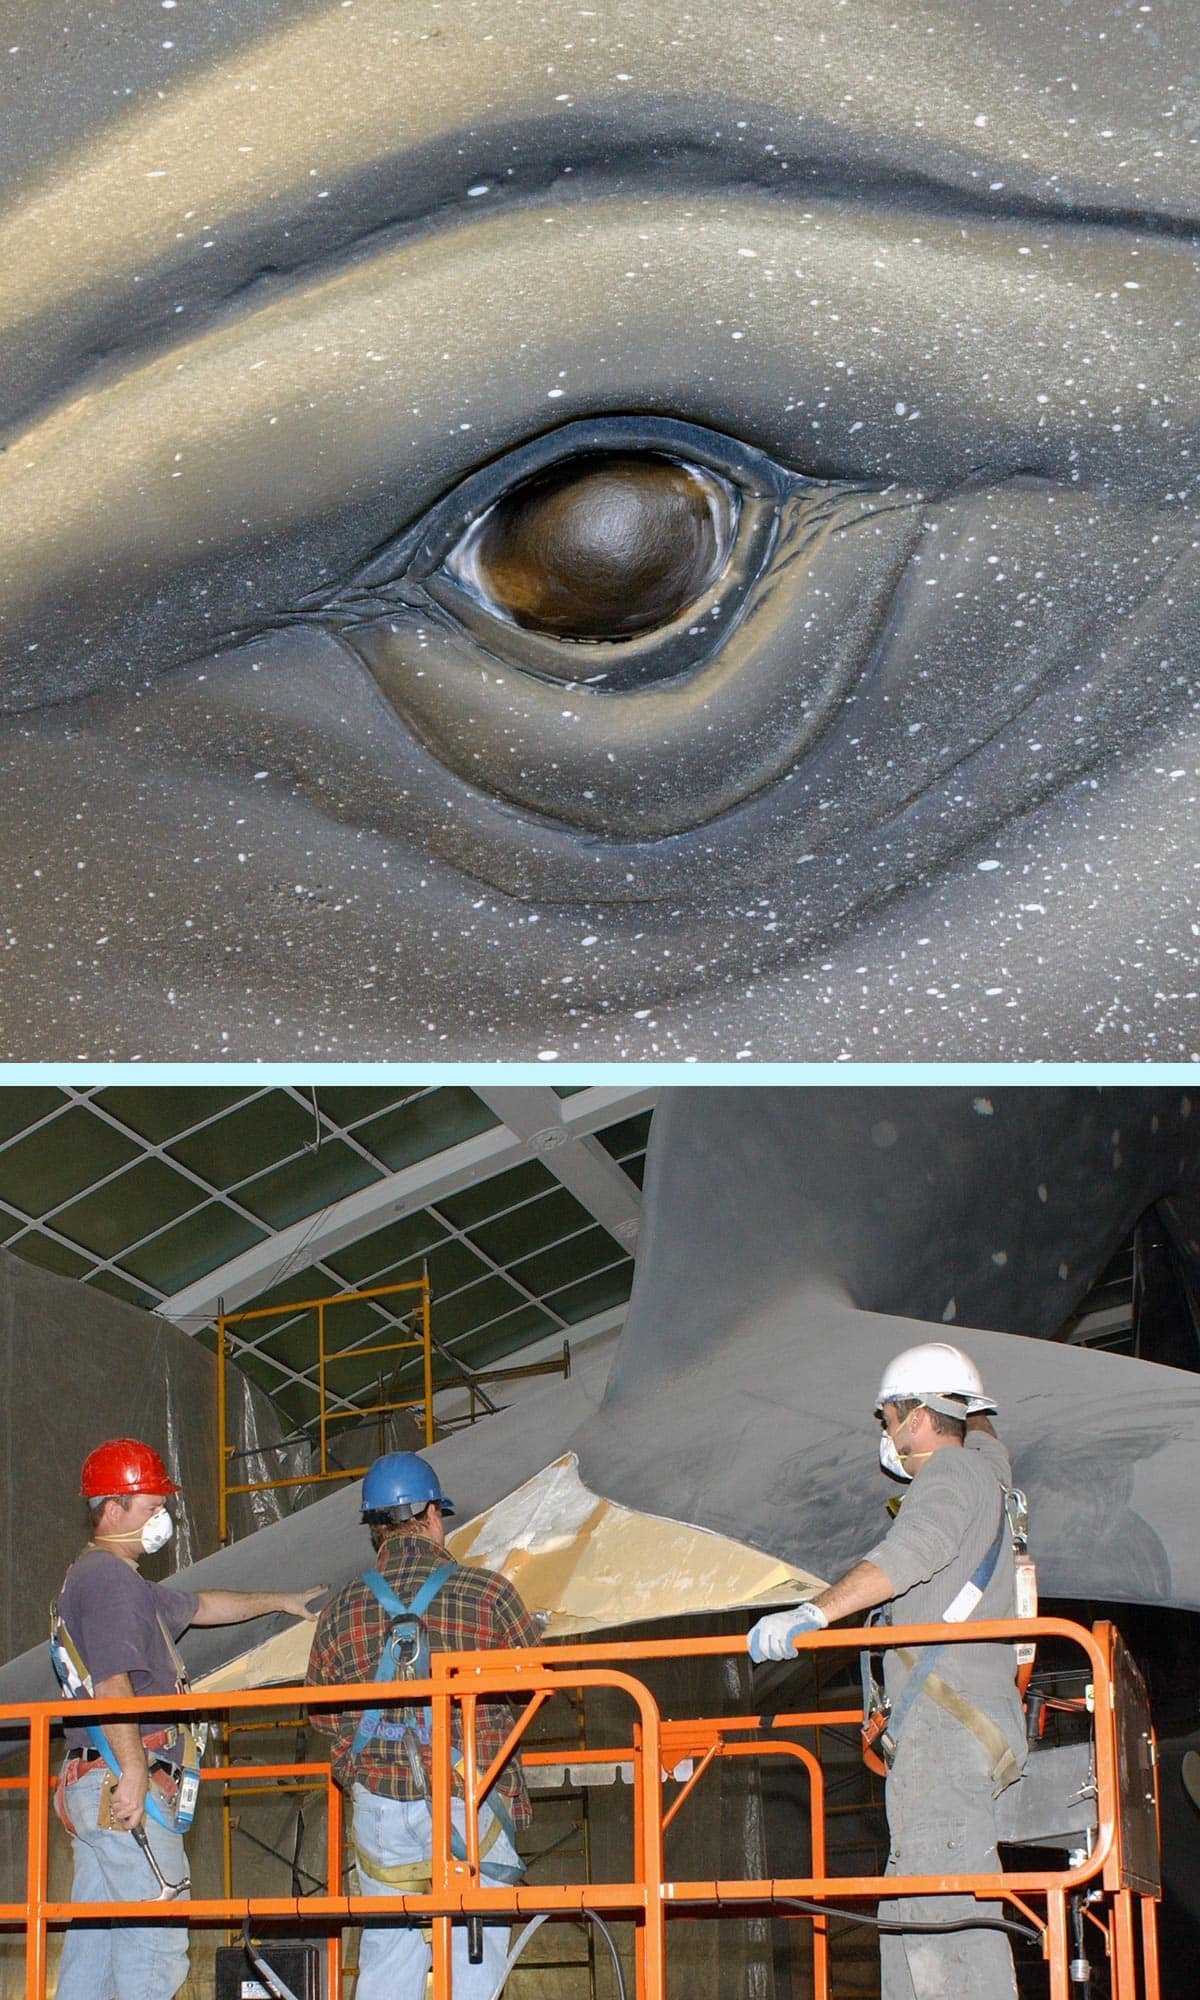 Workers inspecting tail of blue whale model during renovation.